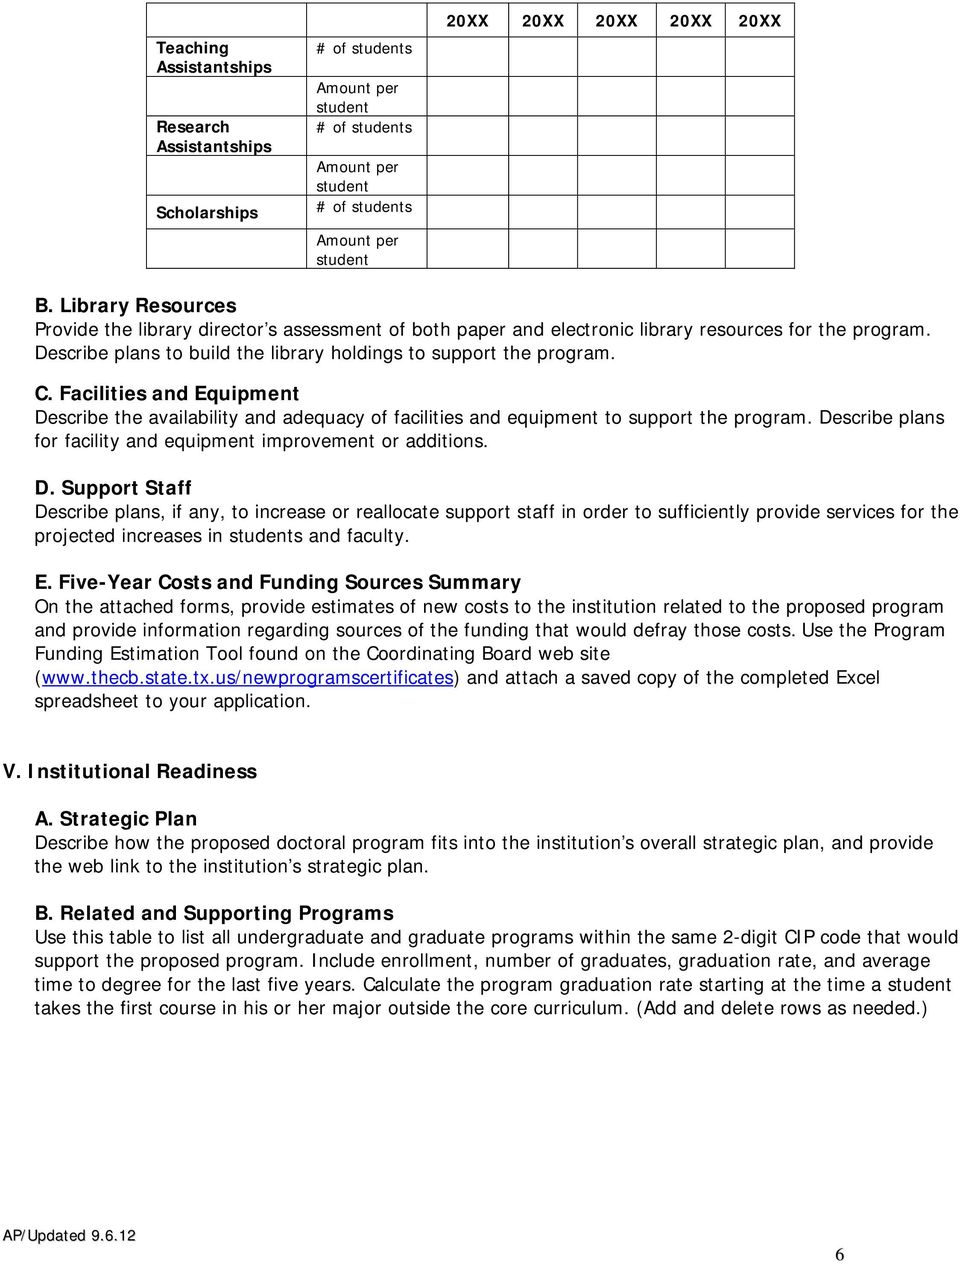 Facilities and Equipment Describe the availability and adequacy of facilities and equipment to support the program. Describe plans for facility and equipment improvement or additions. D. Support Staff Describe plans, if any, to increase or reallocate support staff in order to sufficiently provide services for the projected increases in students and faculty.